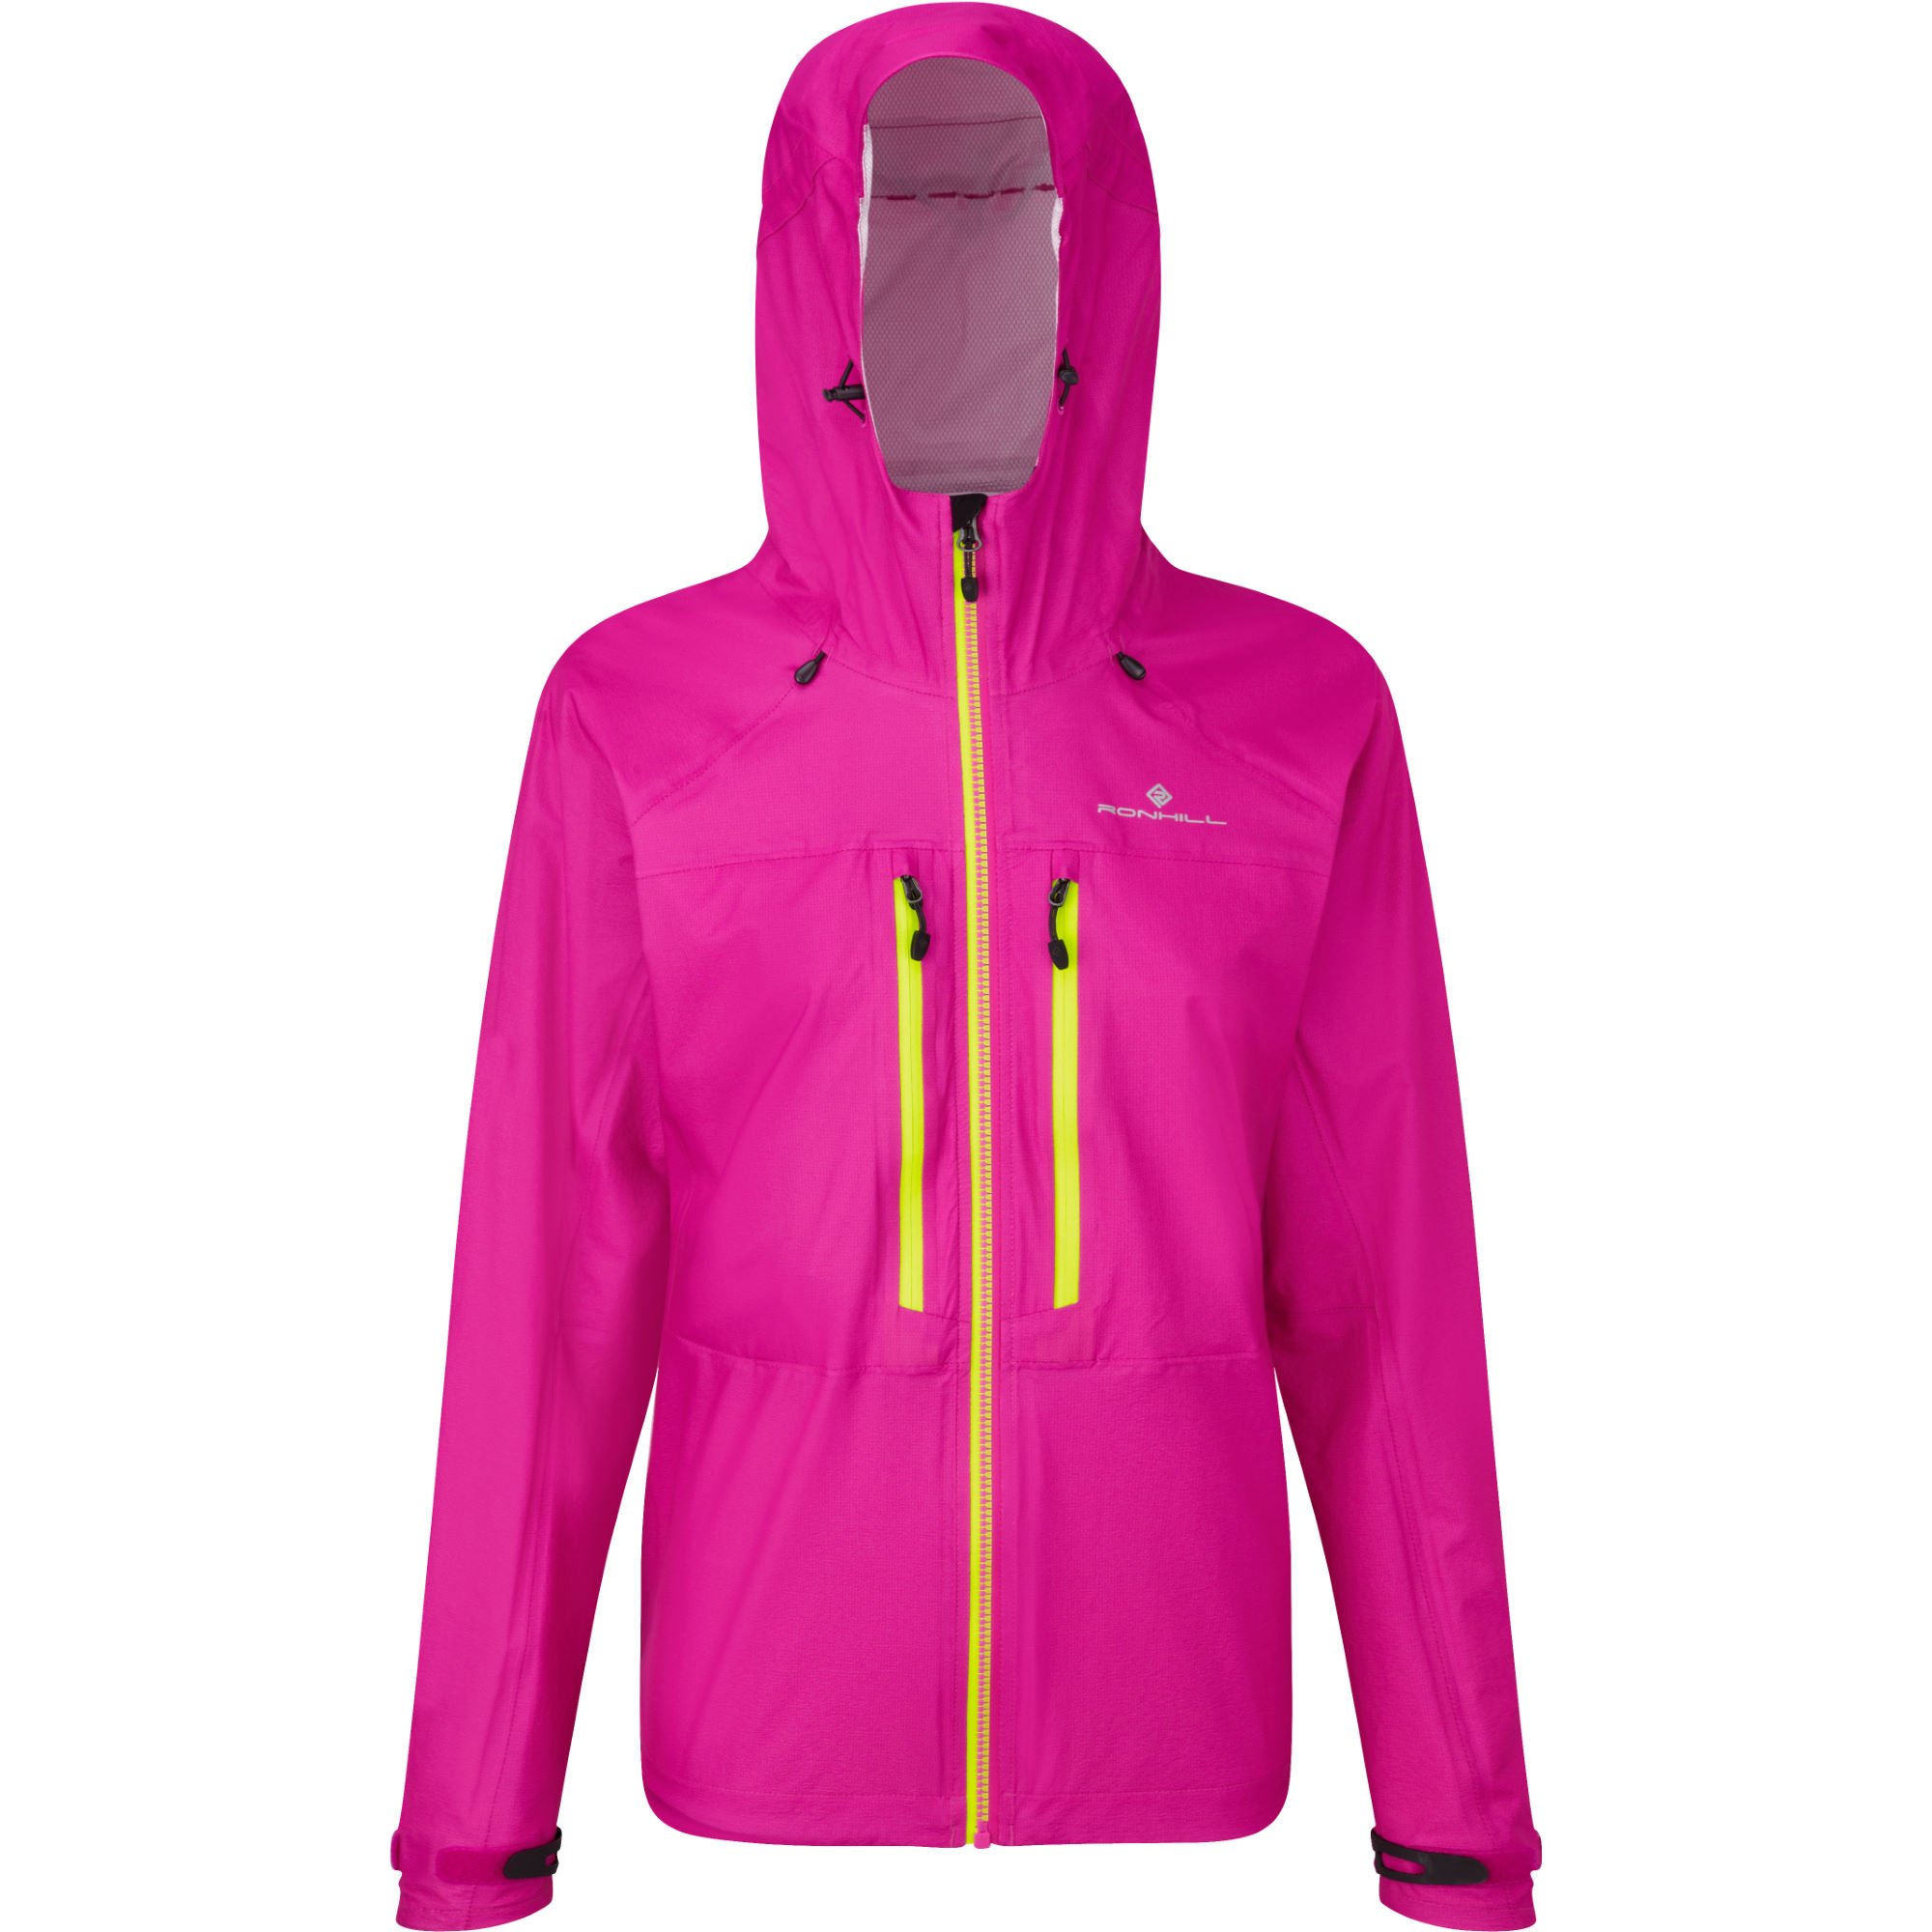 Wiggle | Ronhill Women&39s Trail Tempest Jacket - AW15 | Running